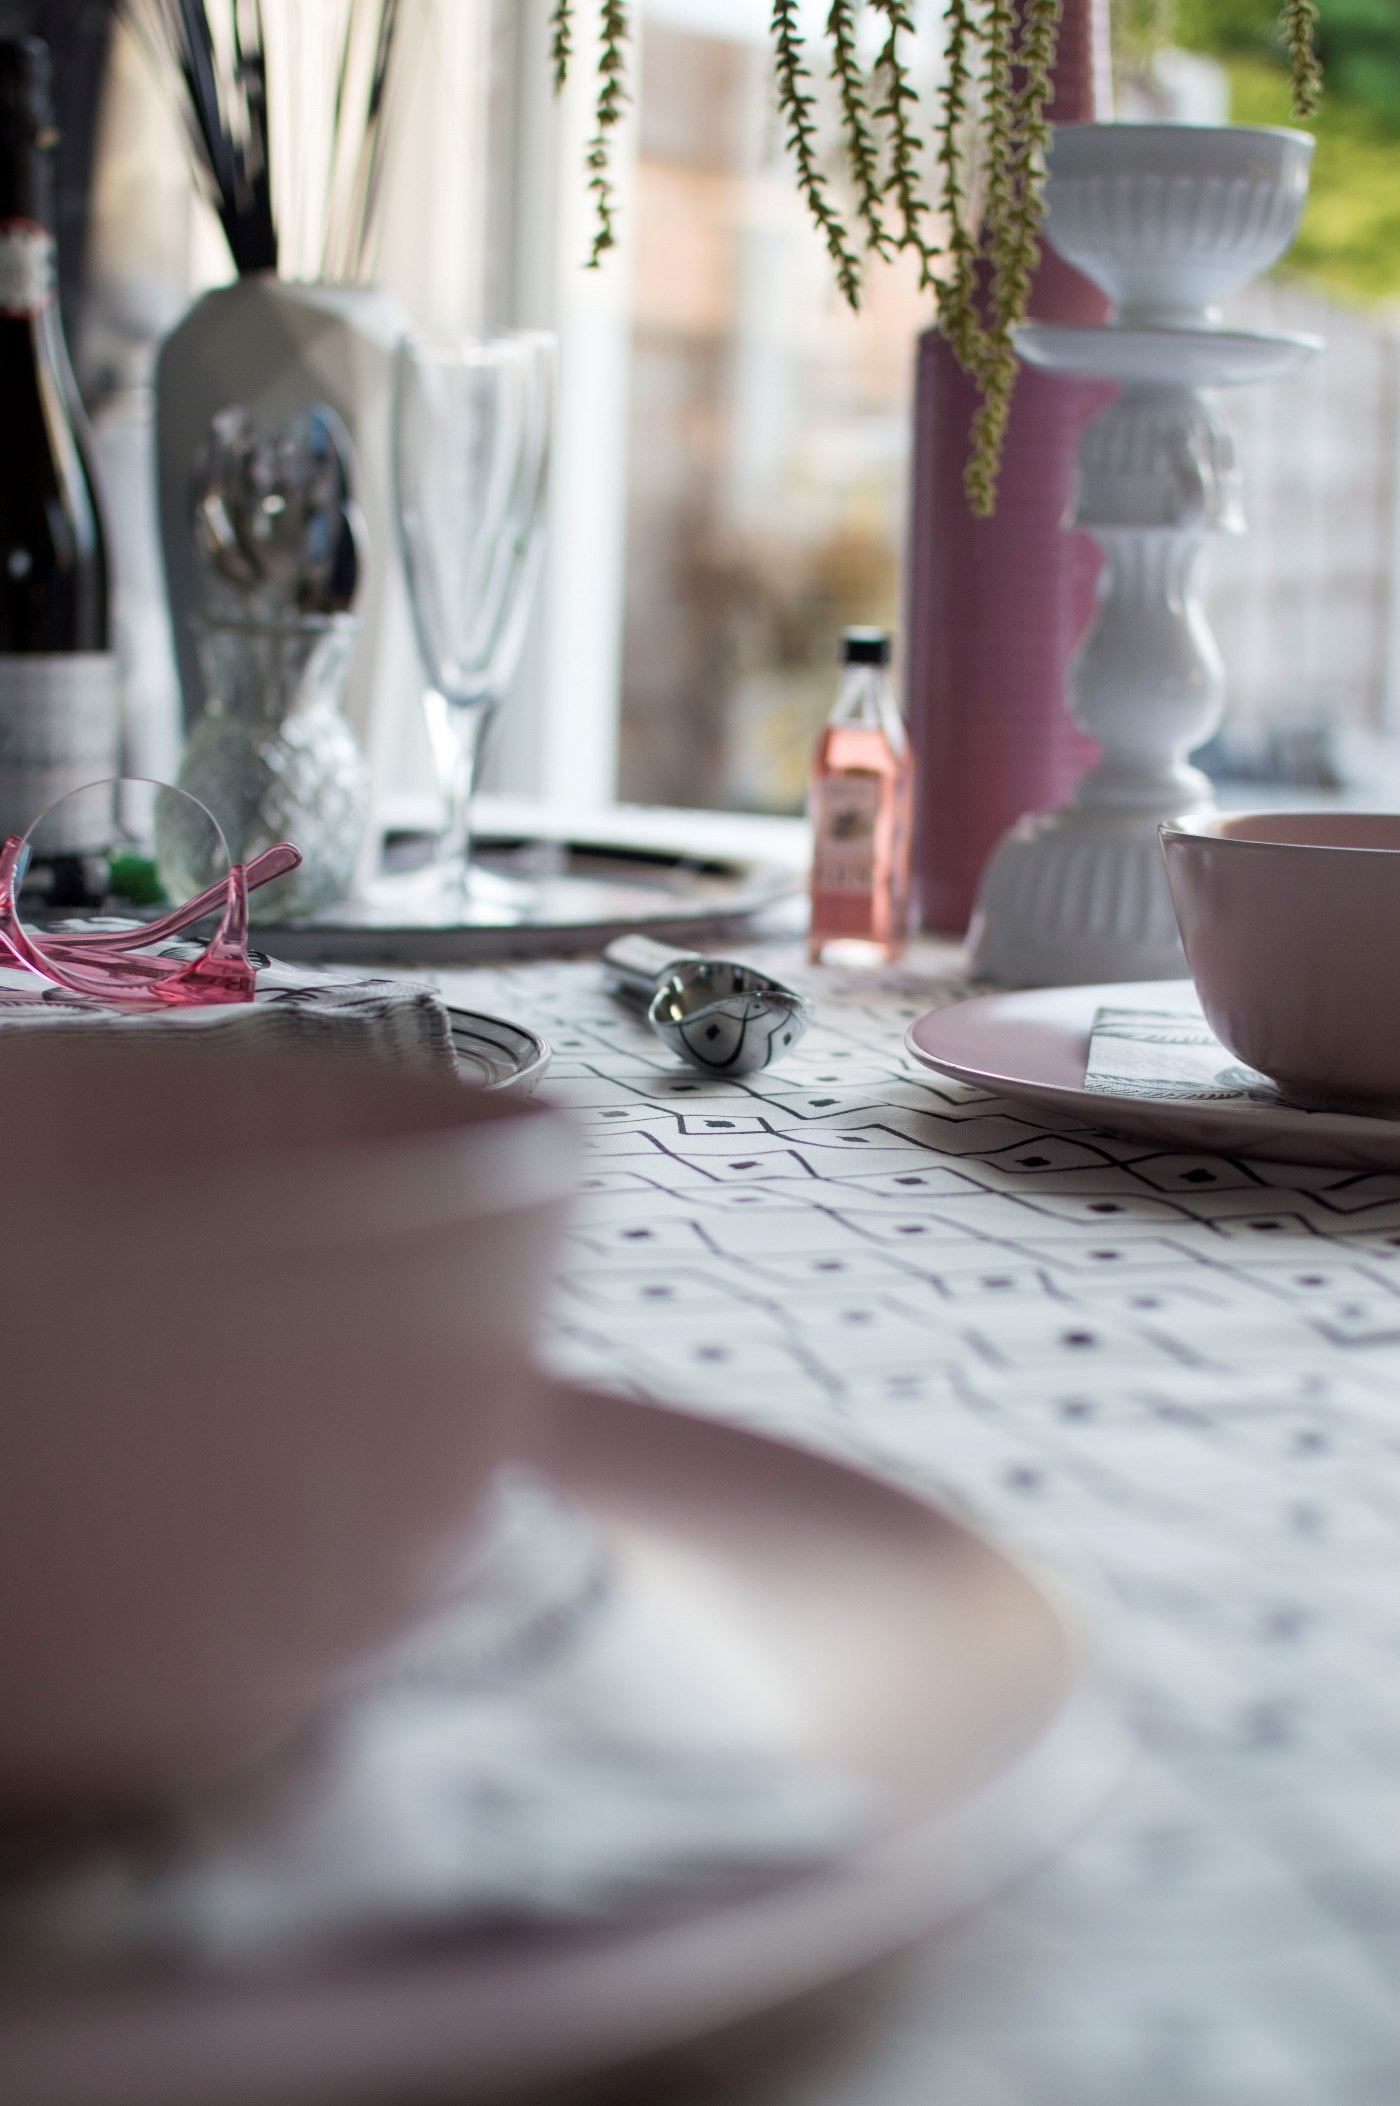 Monochrome dinner table